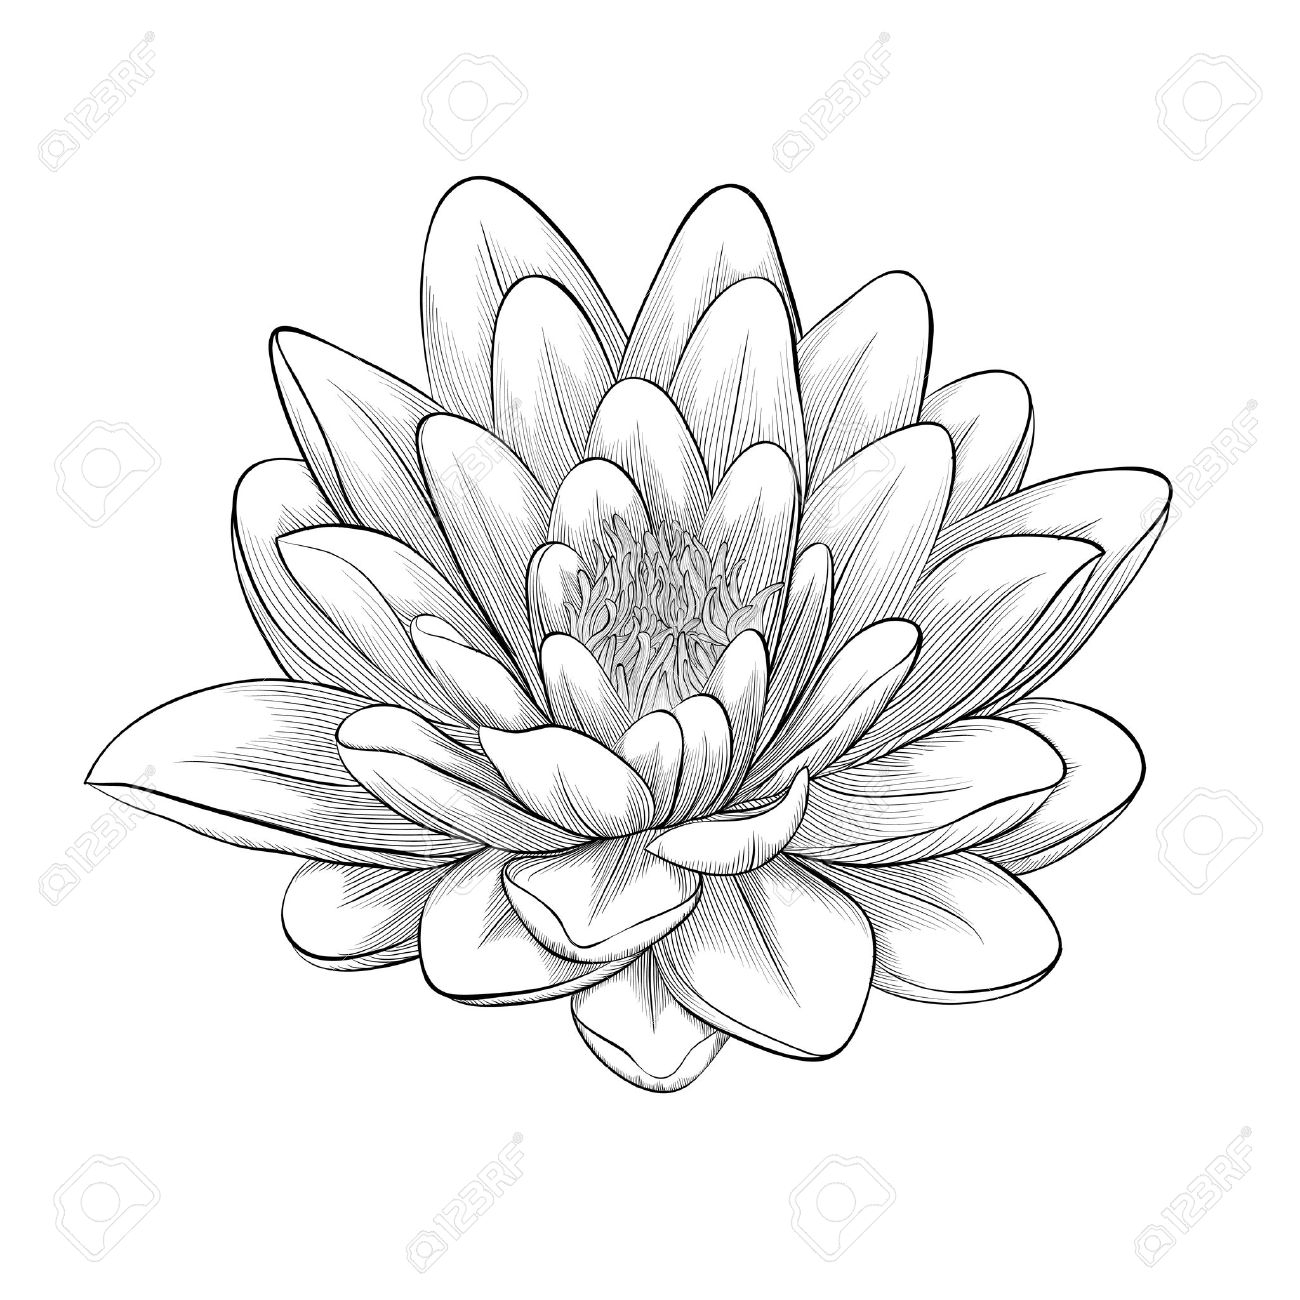 Line drawing lotus flower at getdrawings free for personal use 1300x1300 lotus beautiful drawing lotus flower drawing black and white mightylinksfo Gallery